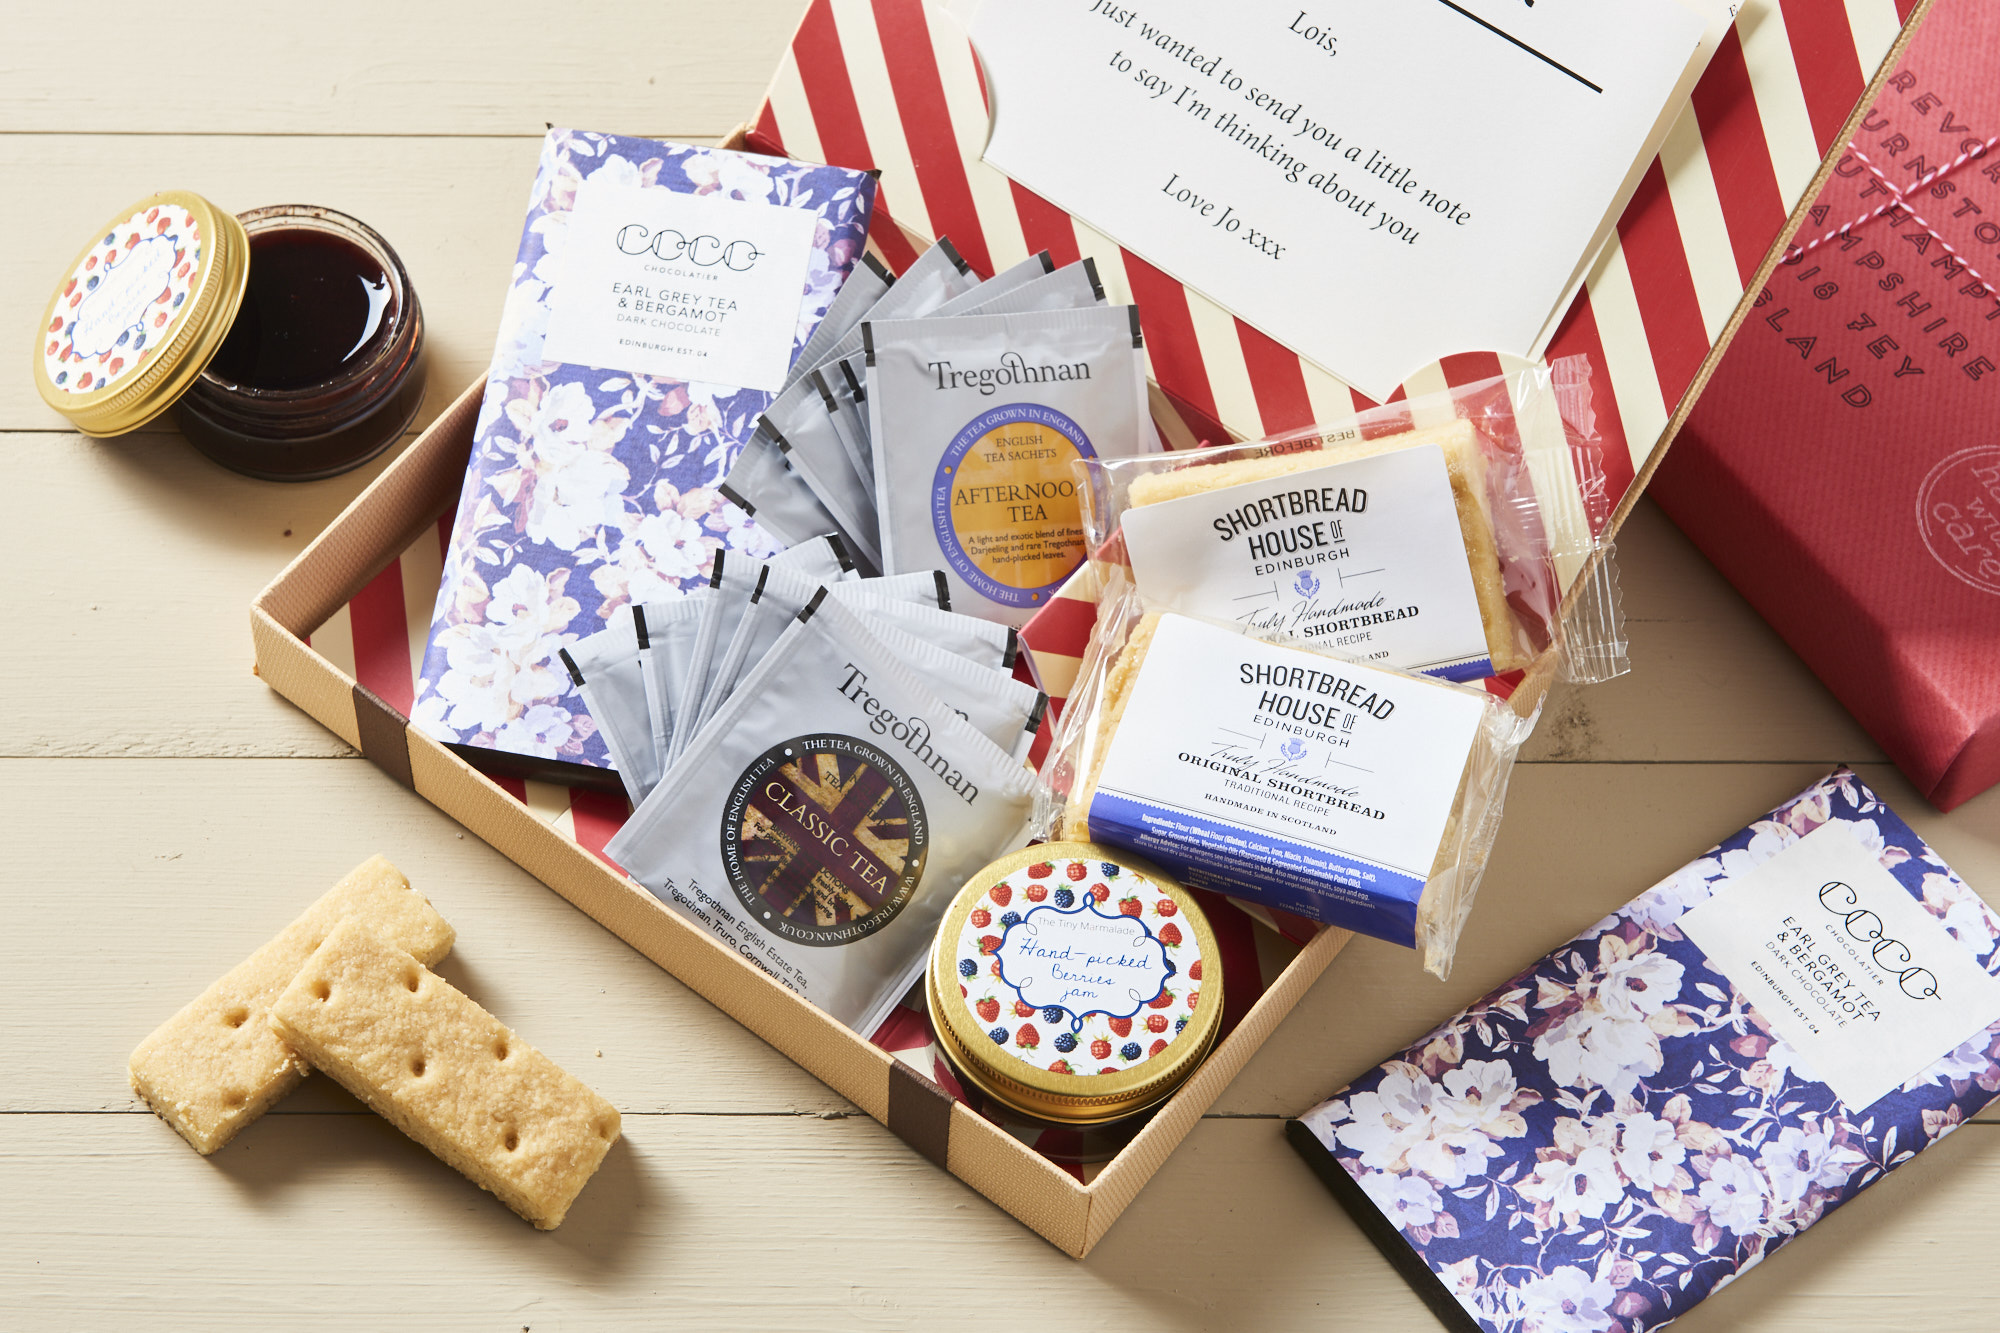 Afternoon Tea Letterbox Hamper by Letter Box Hamper - £24.95